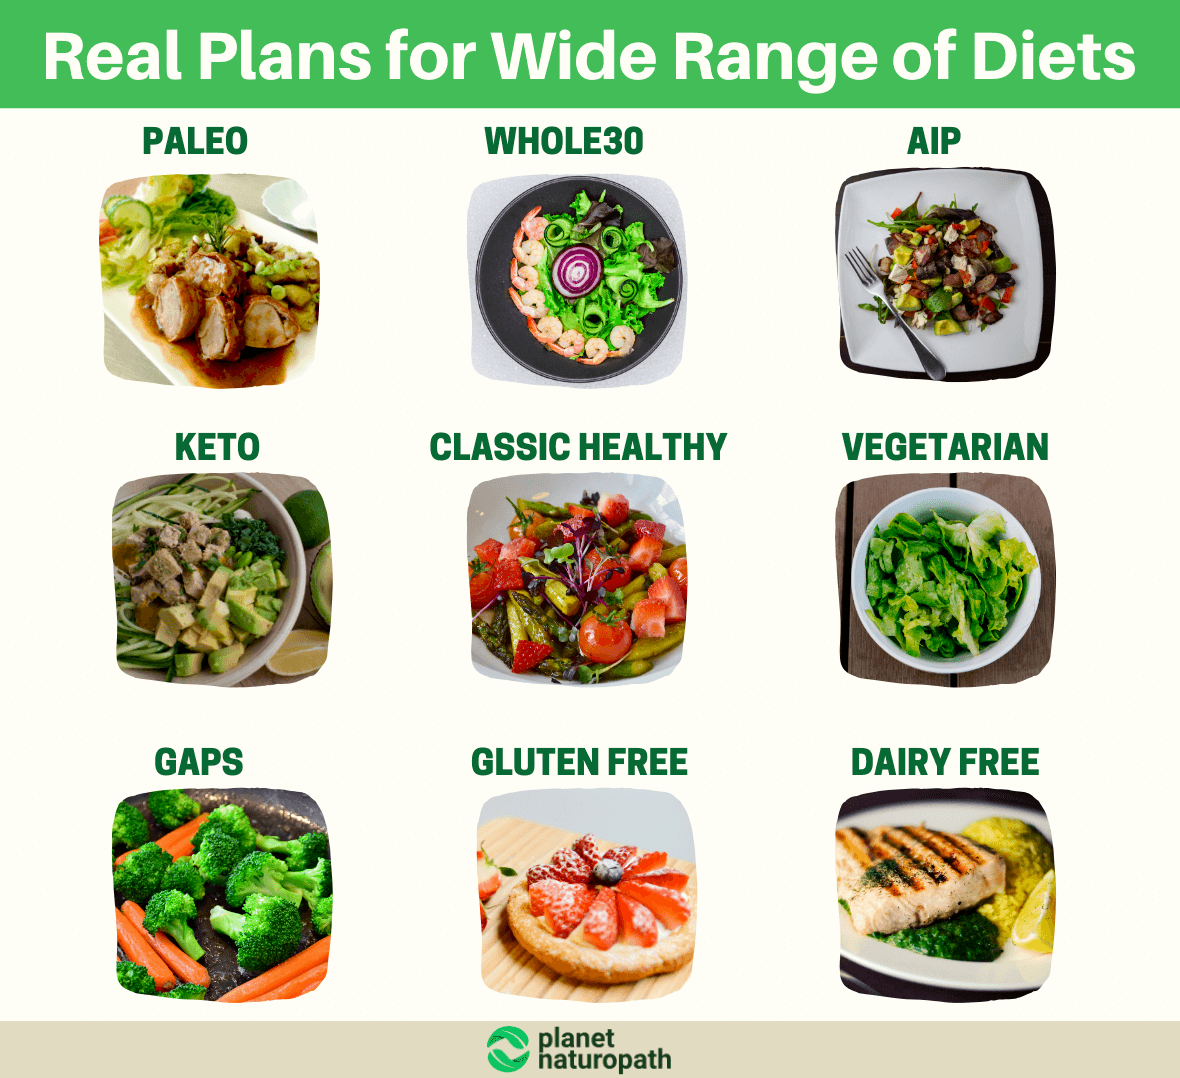 Real-Plans-for-Wide-Range-of-Diets